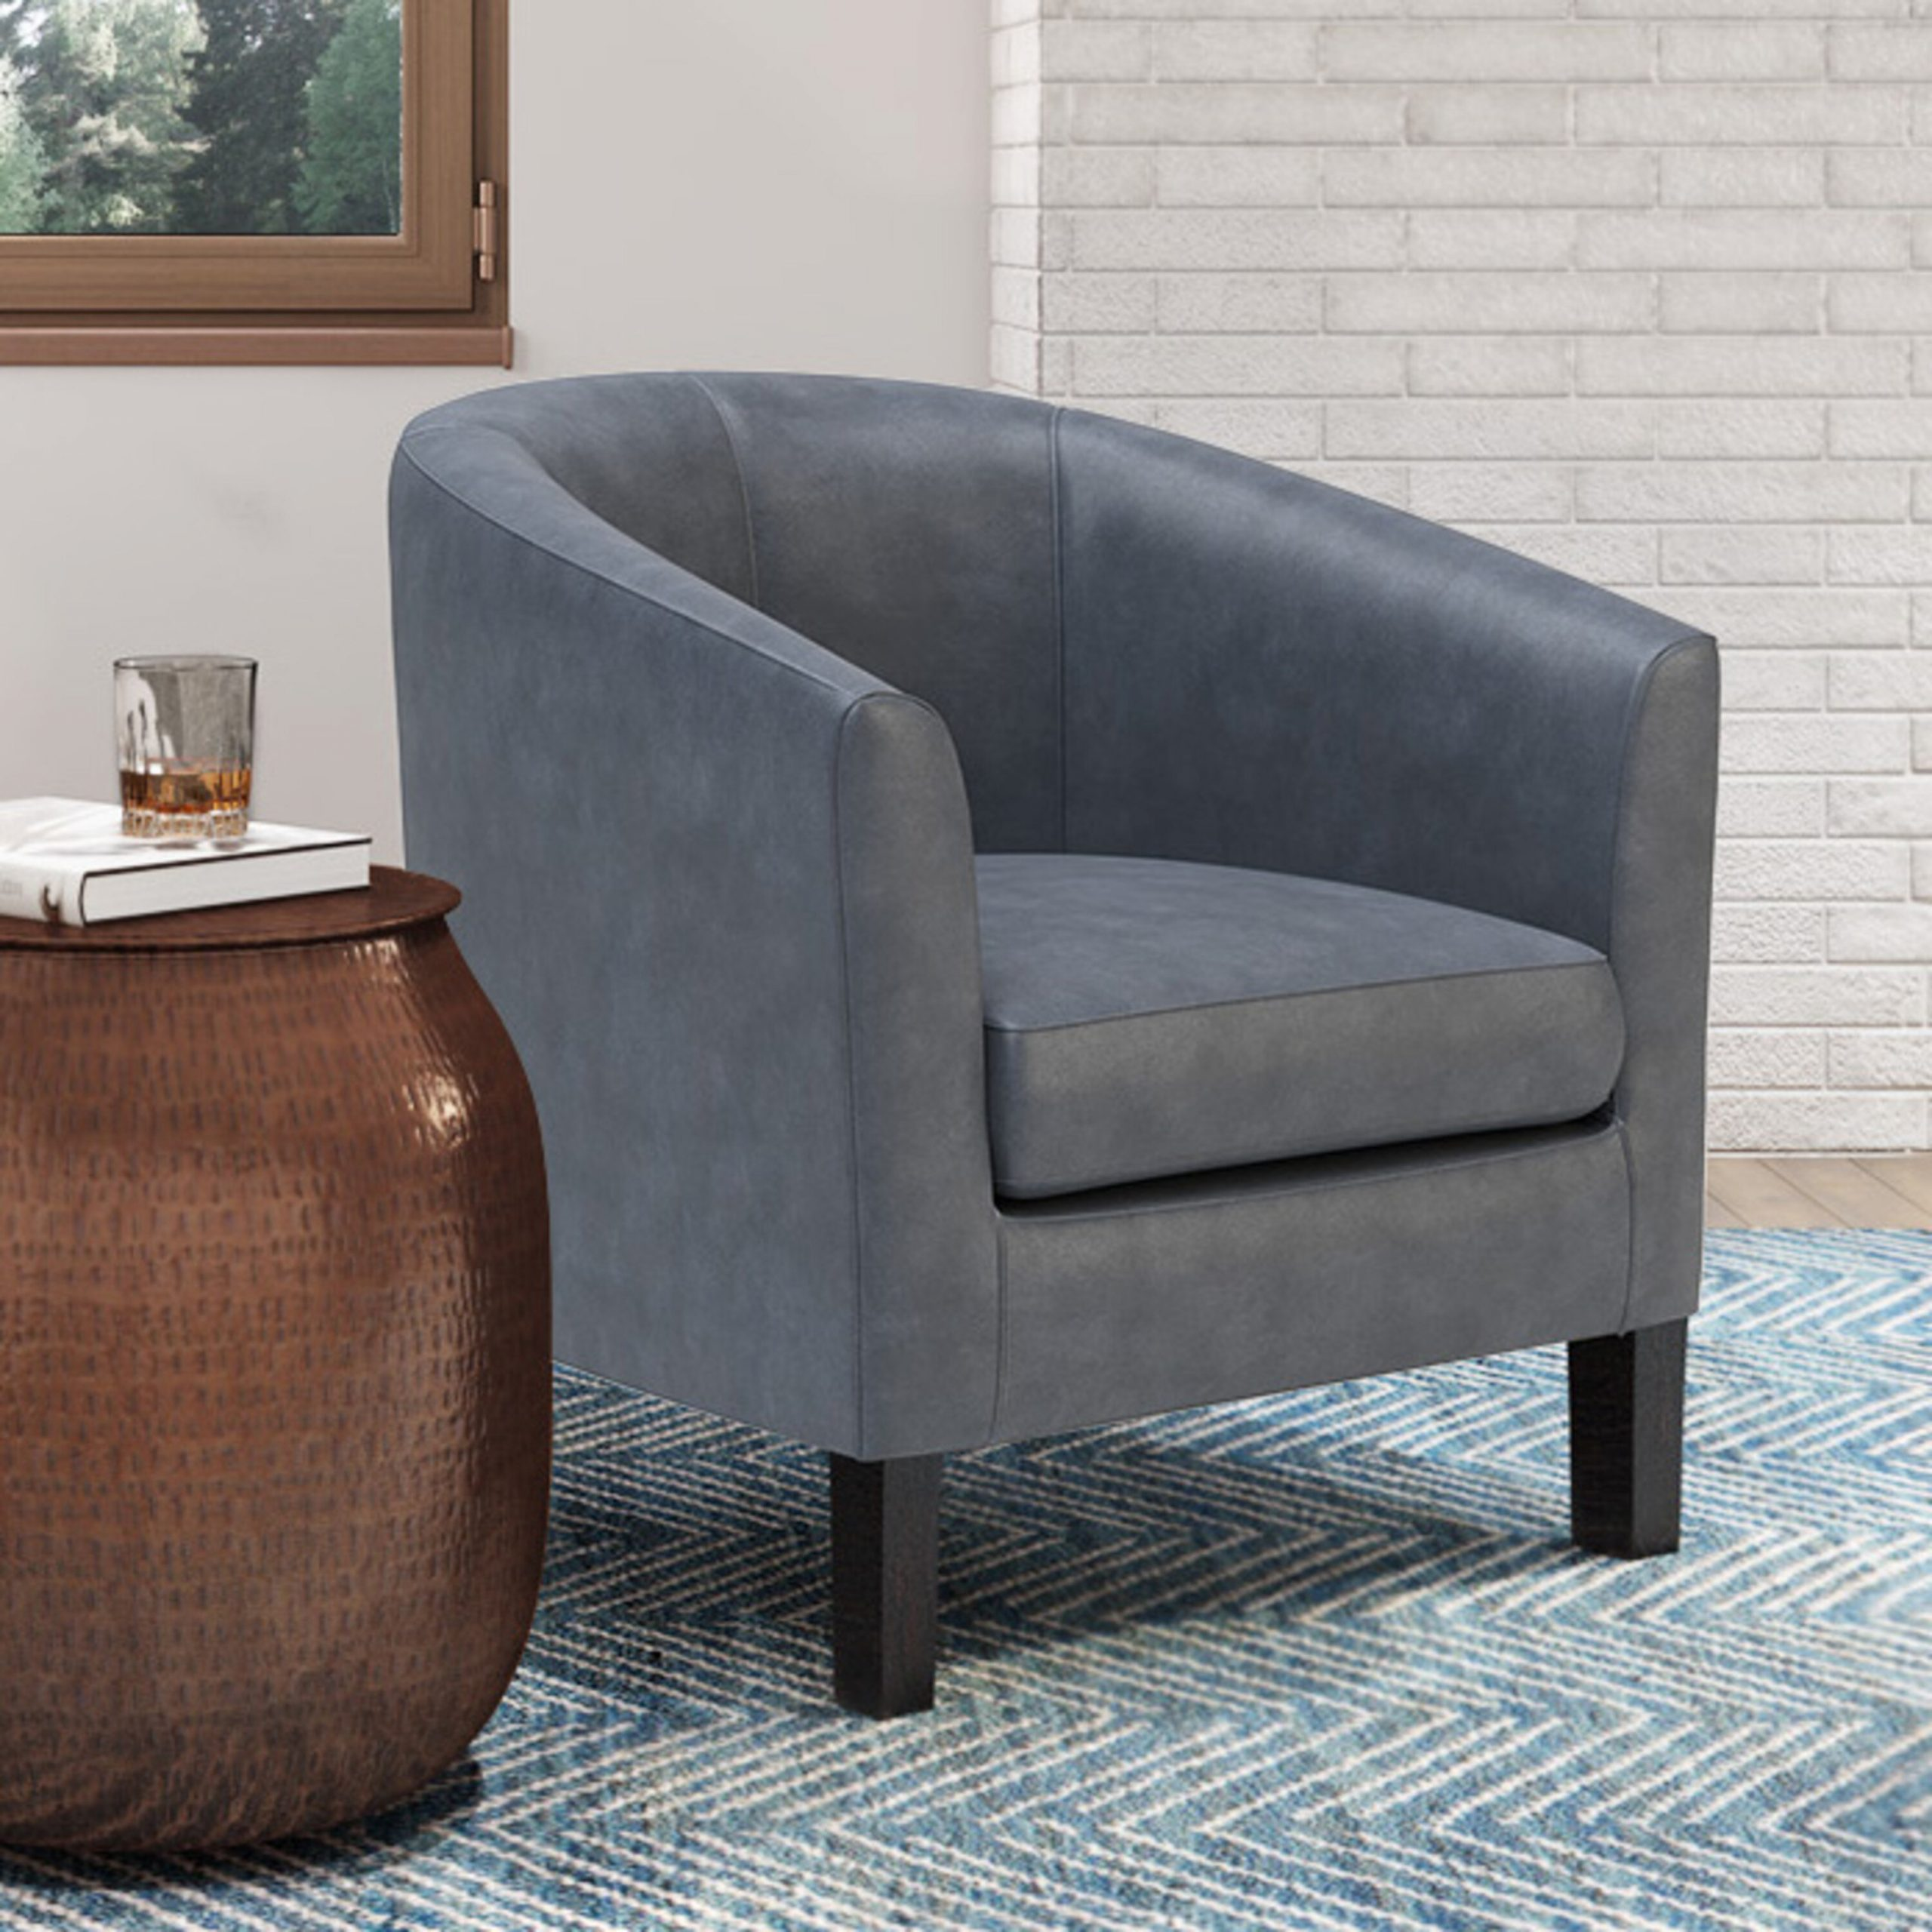 Barrel Accent Chairs On Sale | Wayfair Pertaining To Filton Barrel Chairs (View 14 of 15)